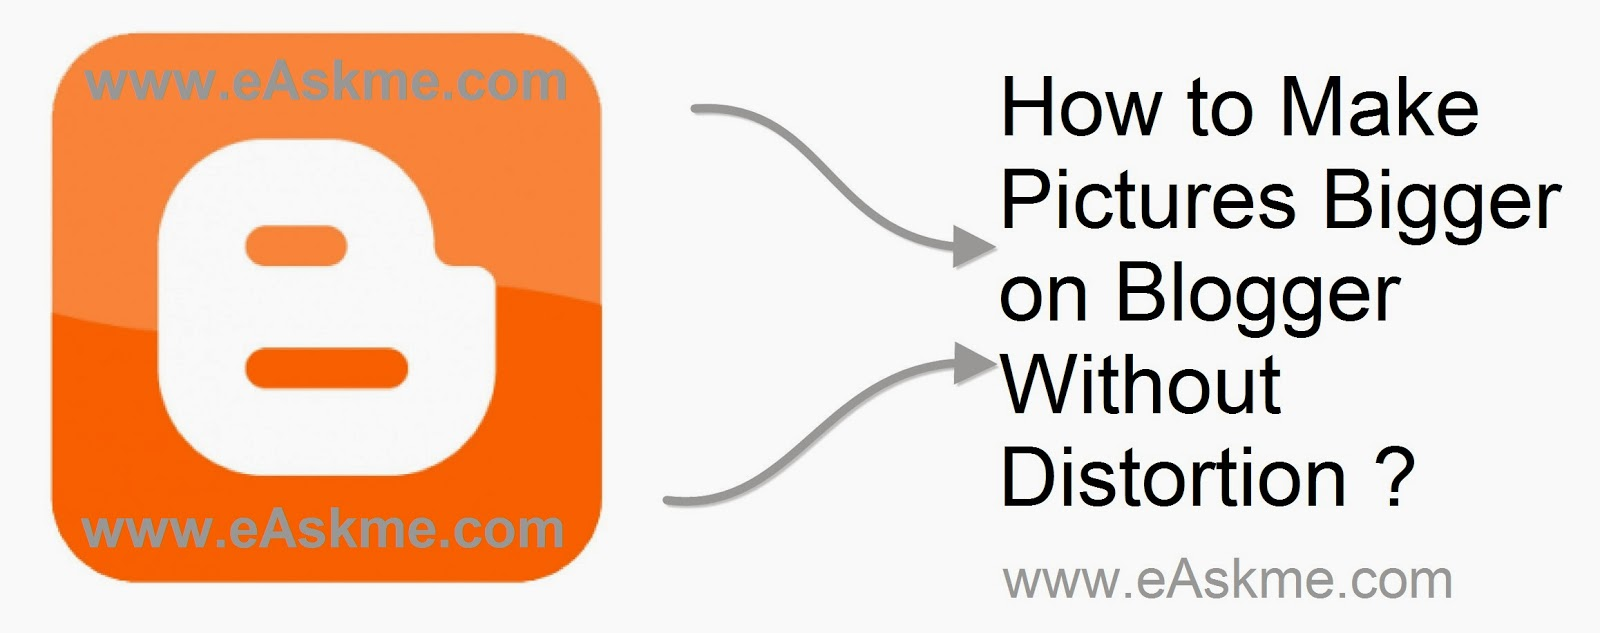 How to Make Pictures Bigger on Blogger Without Distortion : eAskme